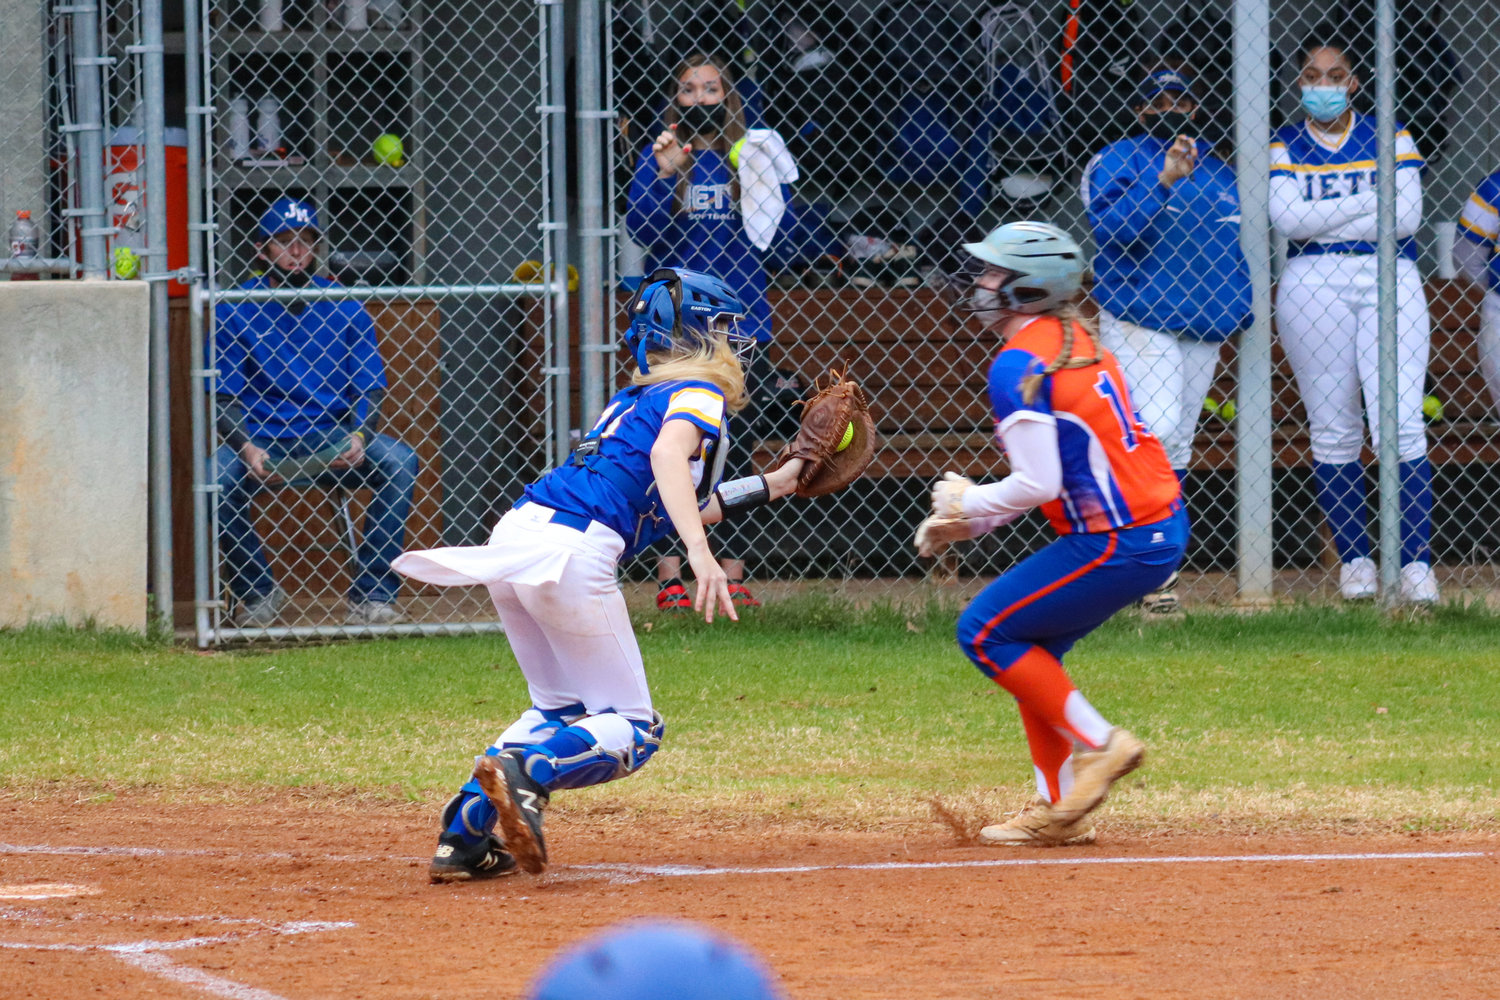 Jordan-Matthews freshman catcher Ragan Smith (left) tags out a Randleman baserunner as she heads to home in the Jets' season-opening loss to Randleman, 15-5, on Tuesday.